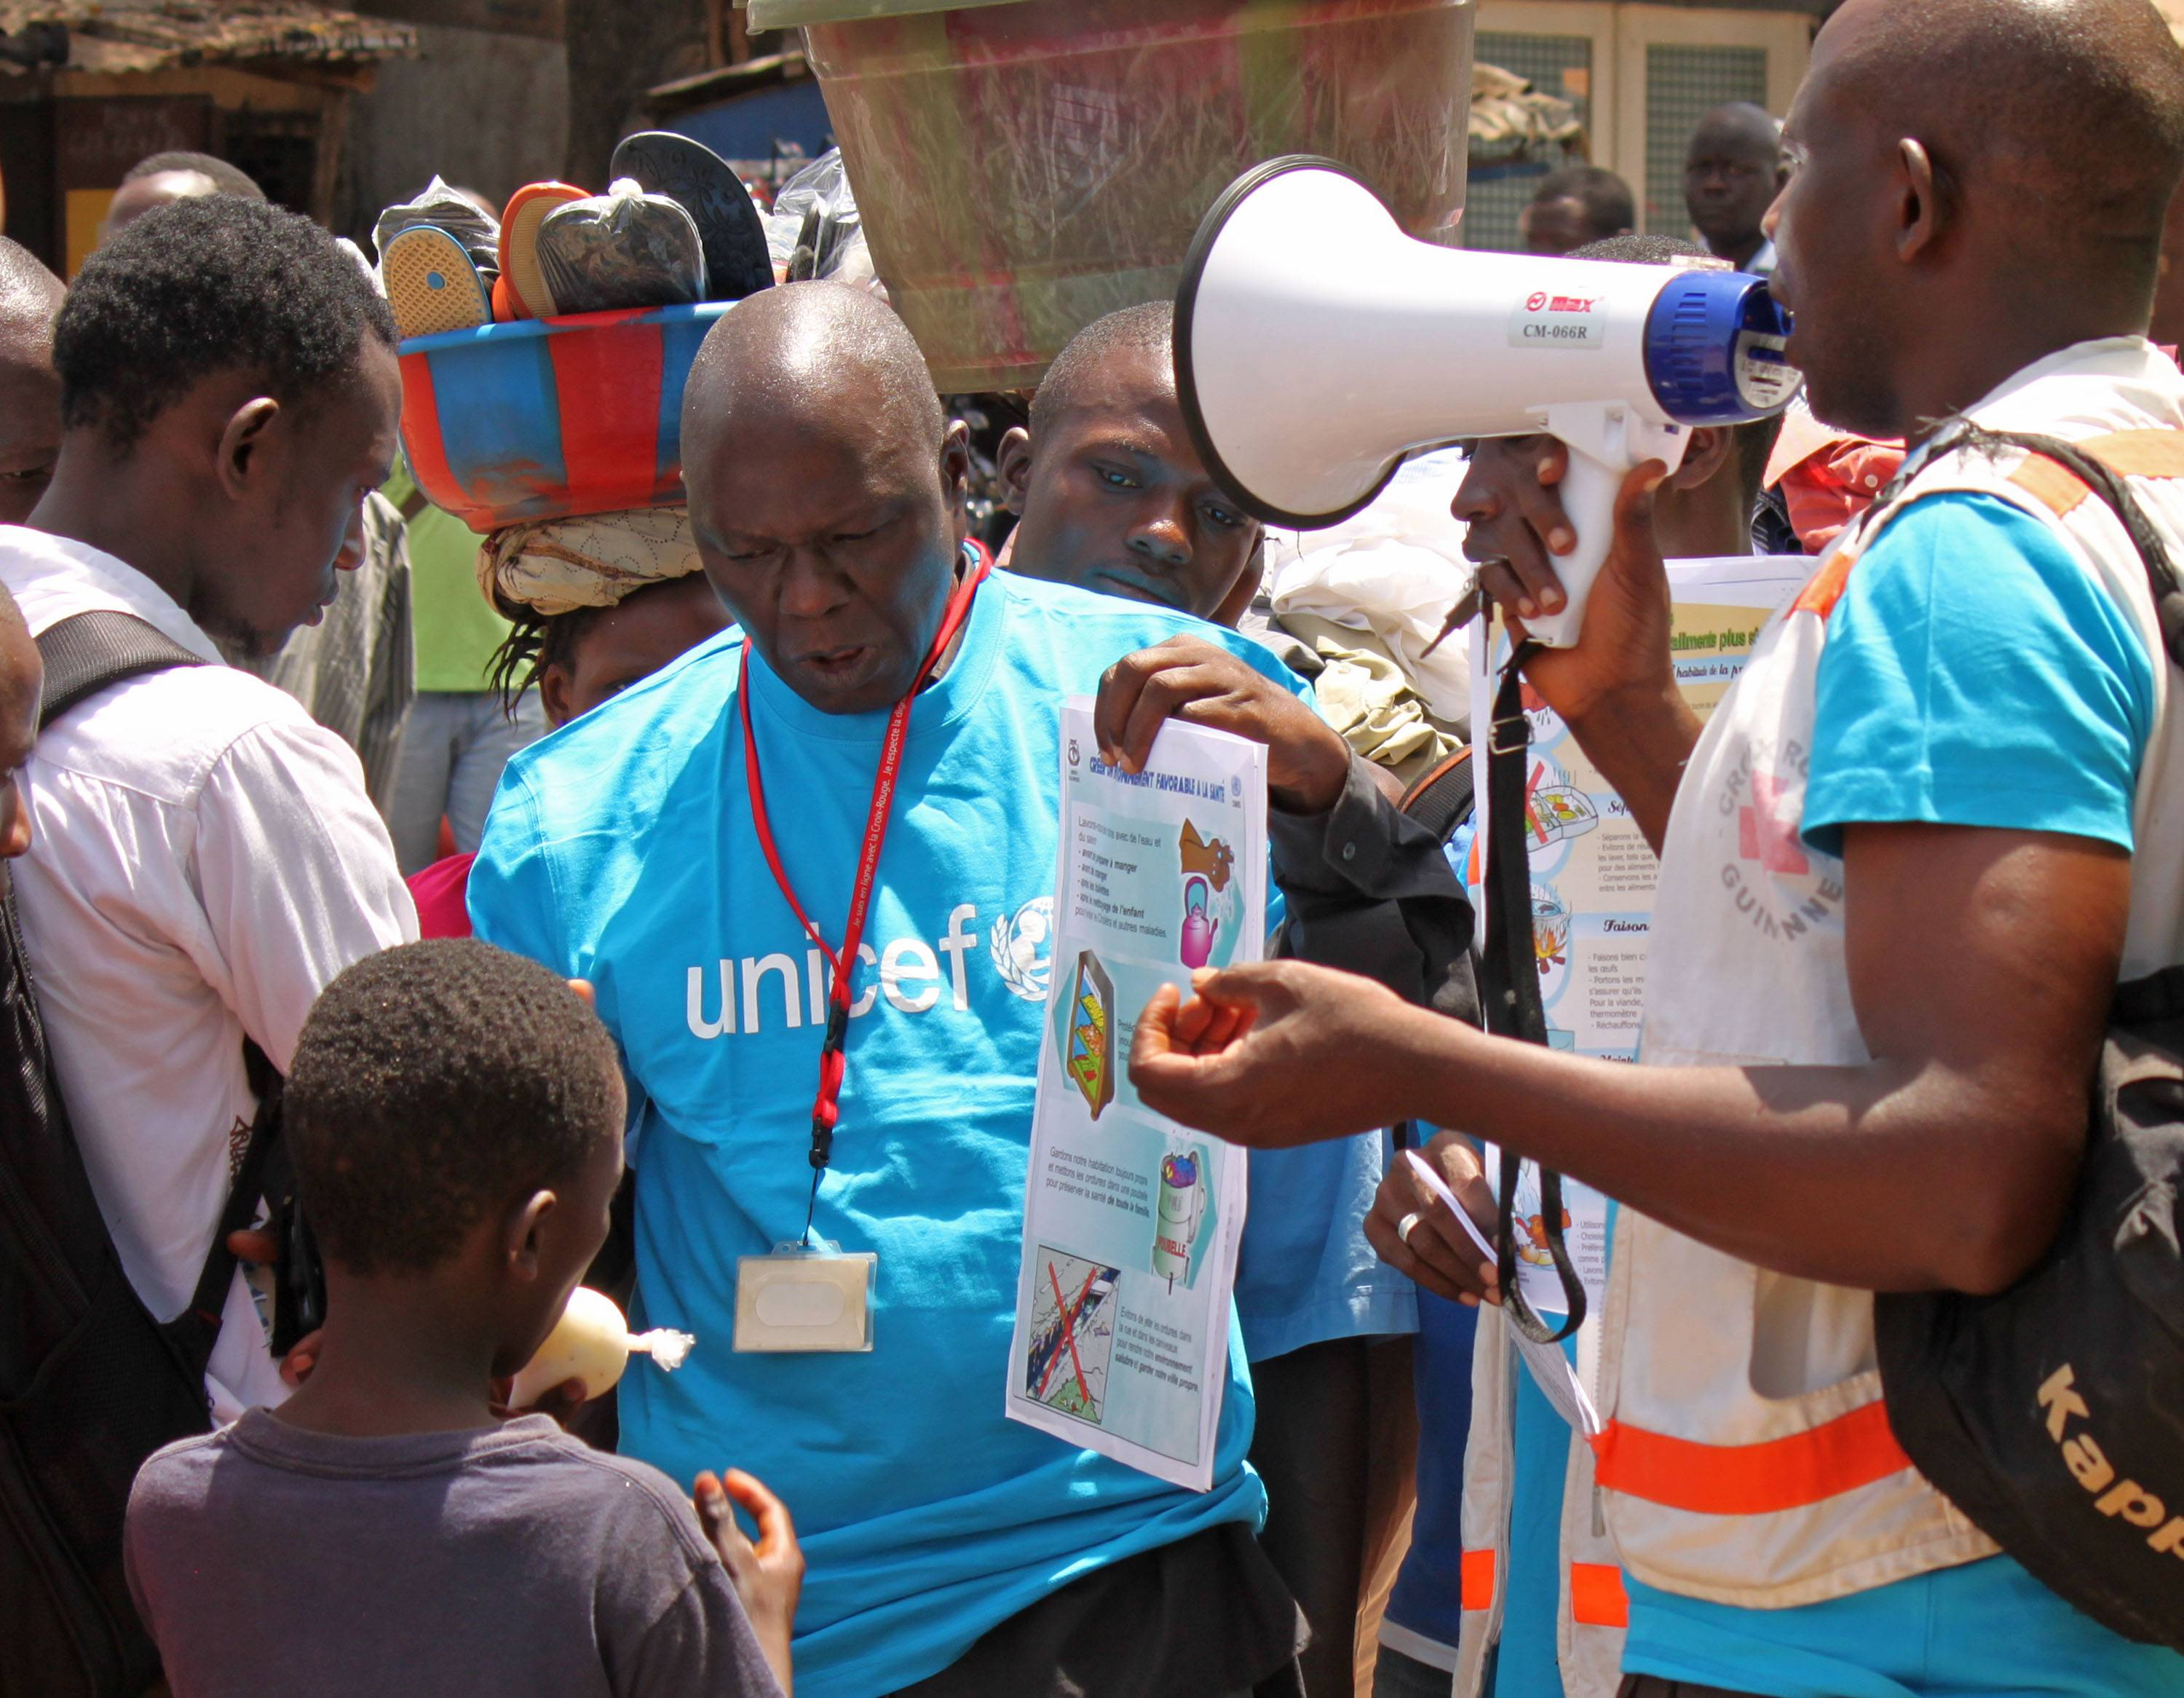 Health workers teach people Monday about the Ebola virus and how to prevent infection, in Conakry, Guinea.